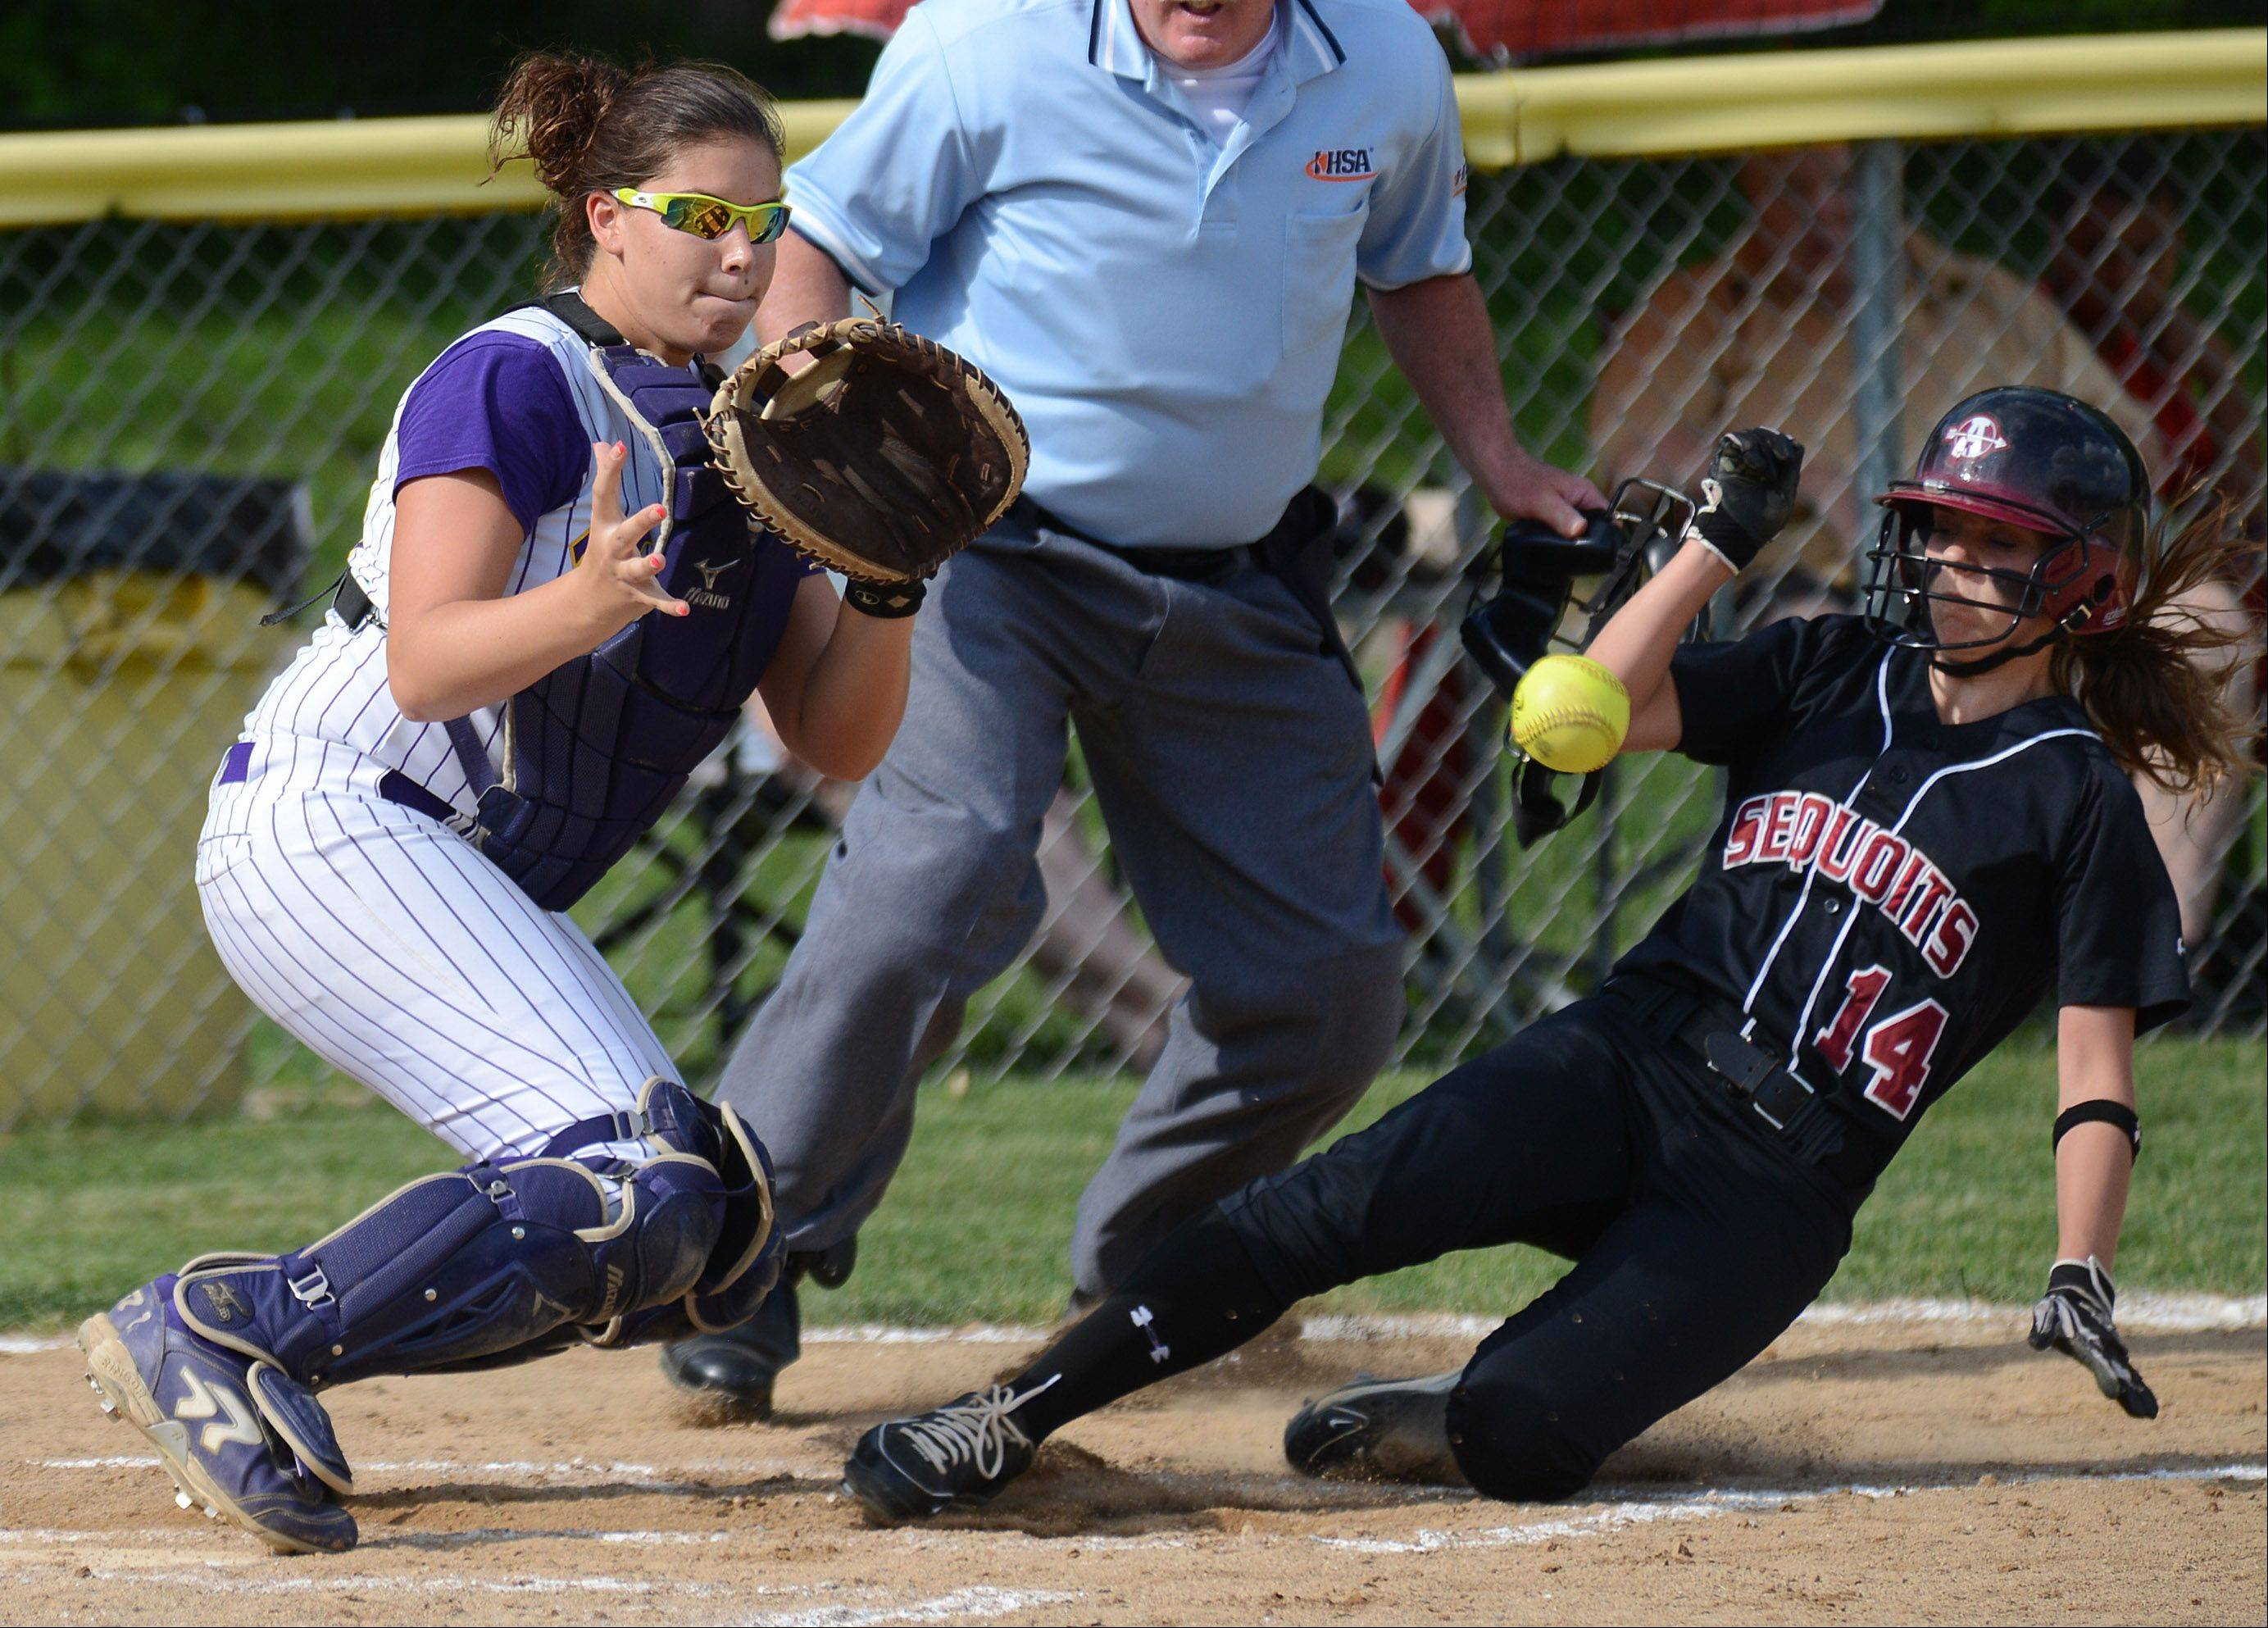 Antioch's Jessica Pedersen slides safely into home as Wauconda catcher Alex Kinnamon eyes the ball during Wednesday's Class 3A sectional semifinal in Grayslake.